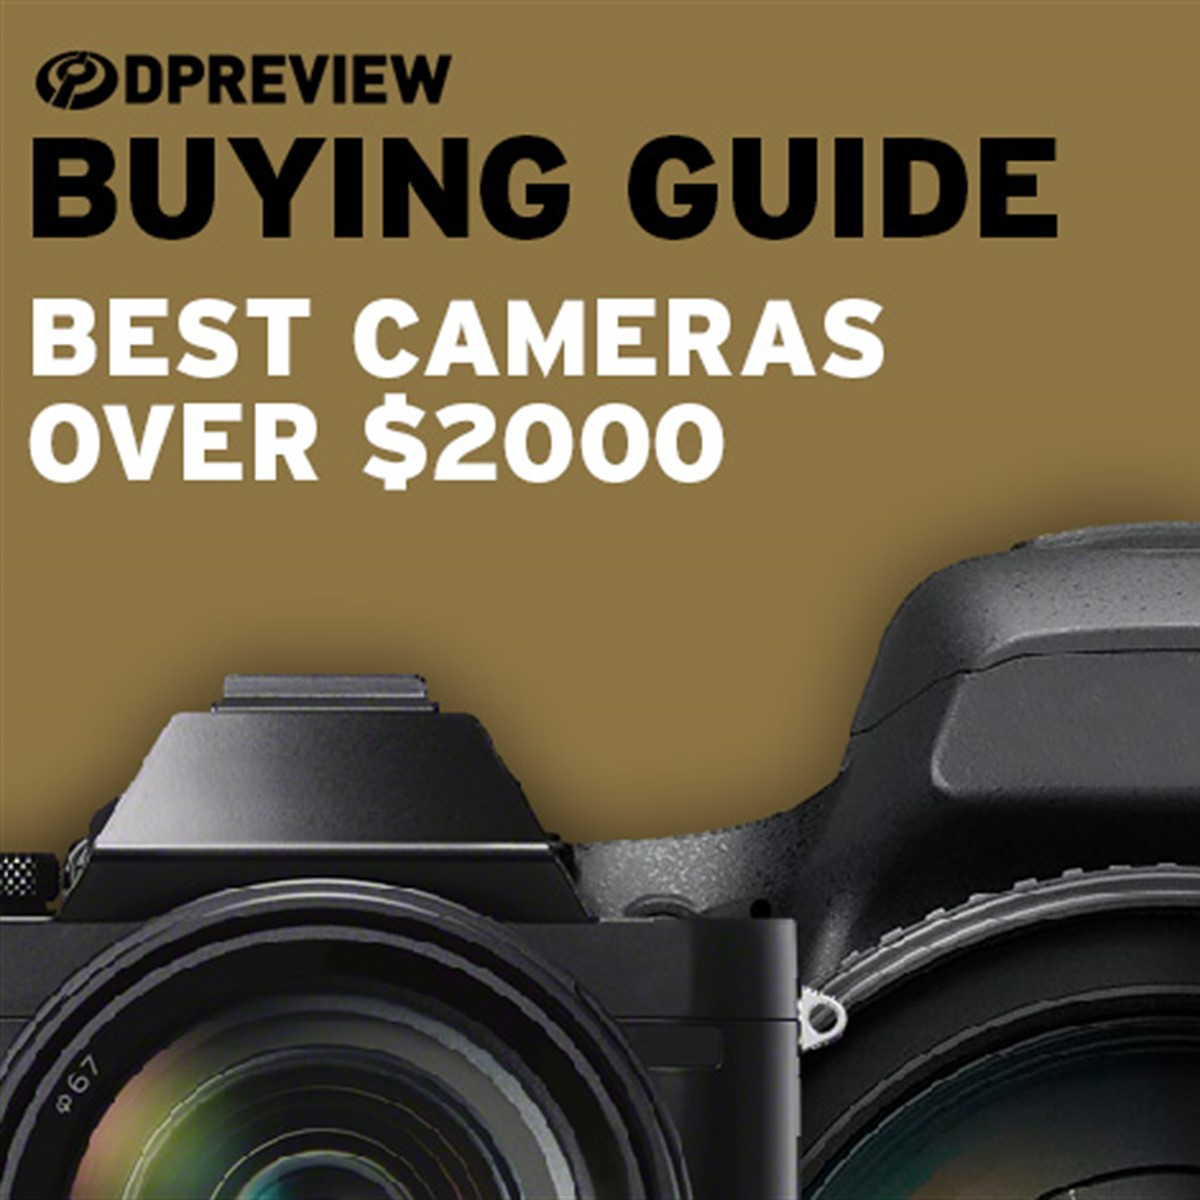 2019 Buying Guide: Best cameras over $2000: Digital Photography Review